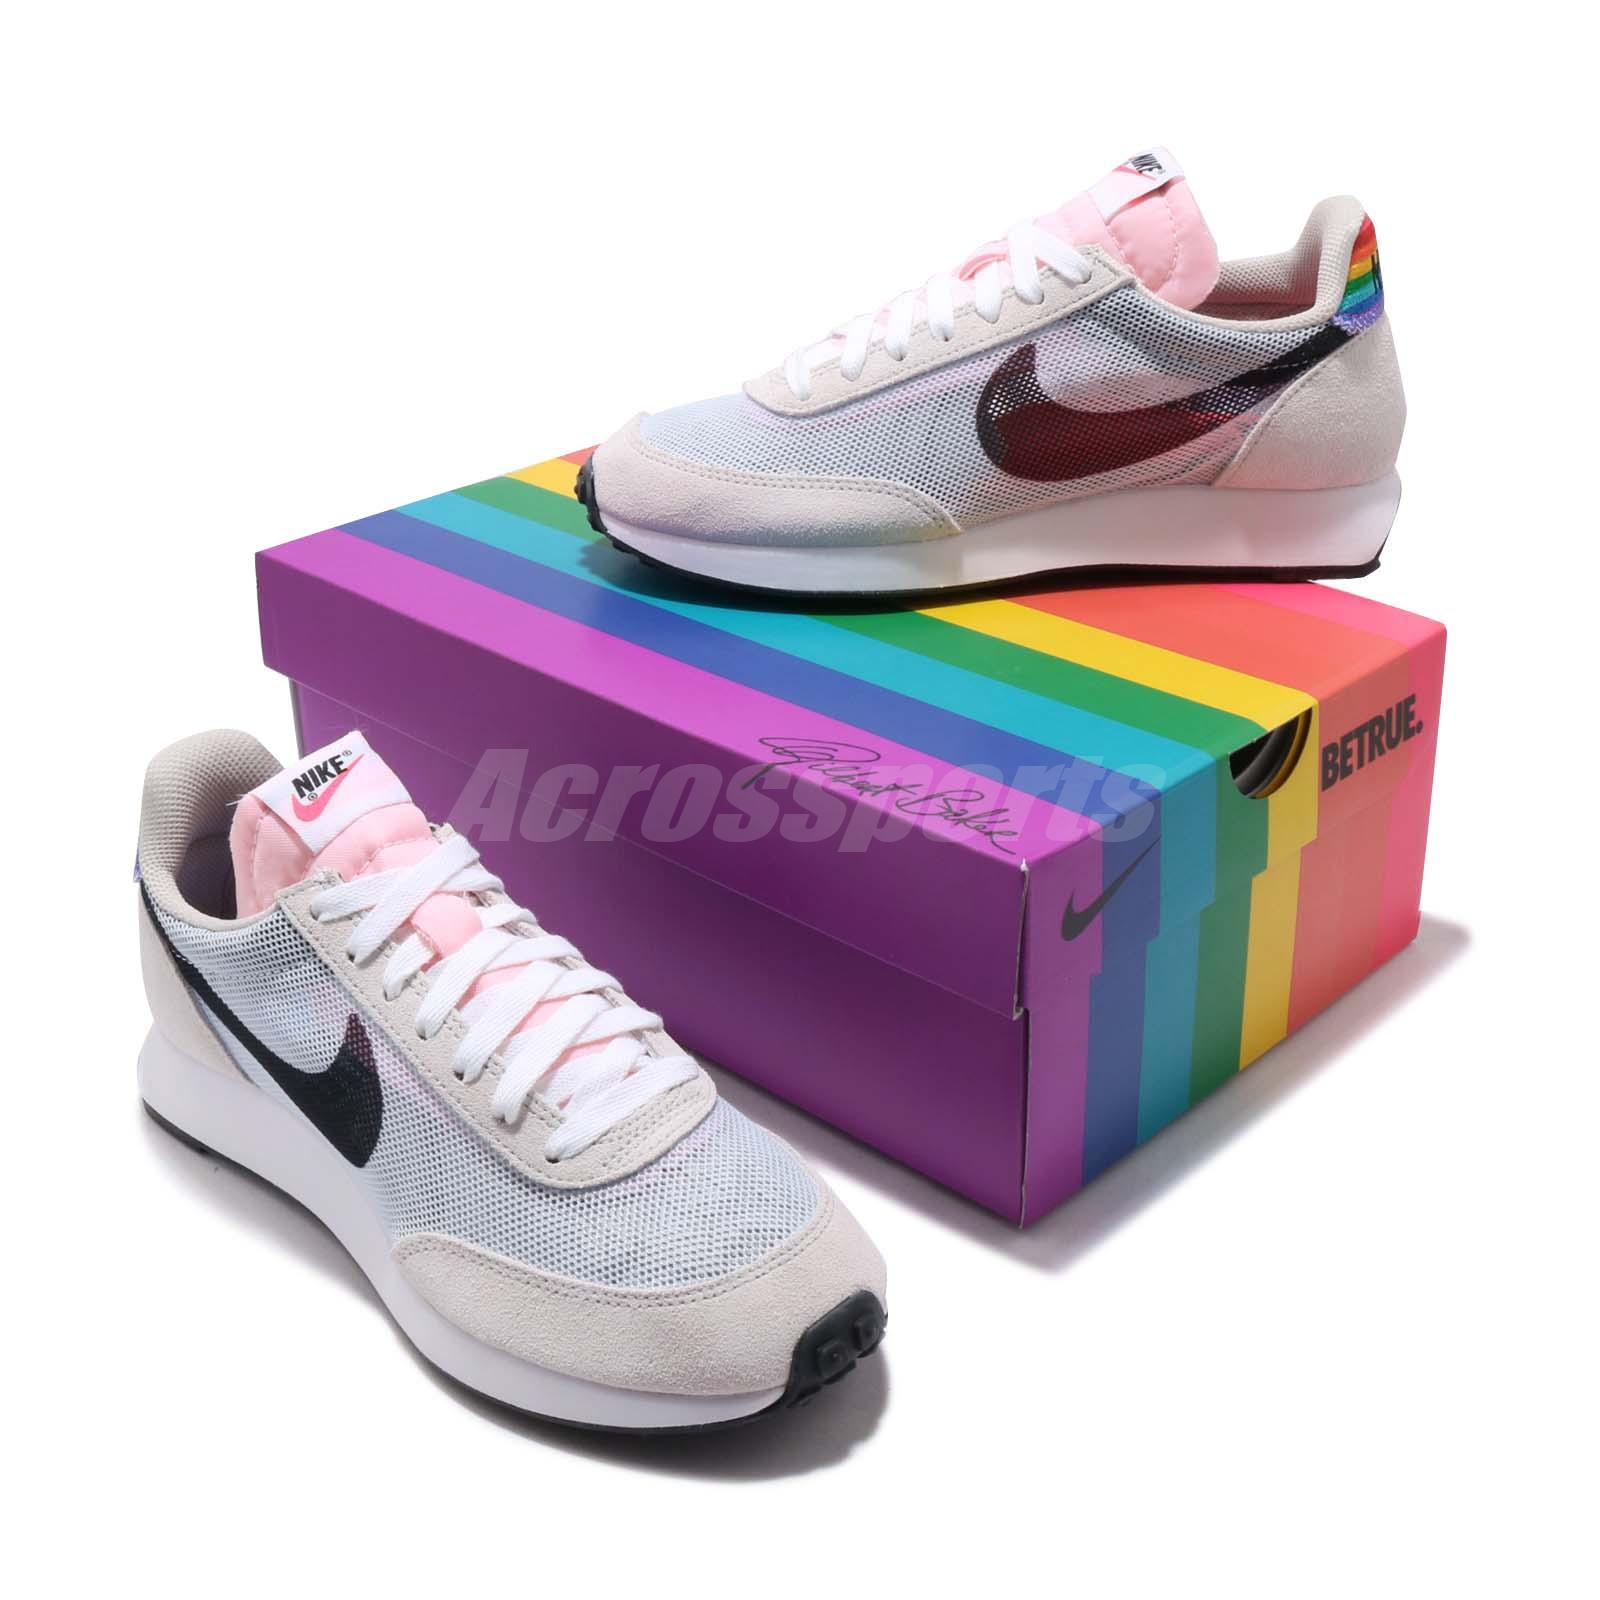 cheapest best authentic detailing Details about Nike Air Tailwind 79 Betrue Be True Rainbow LGBTQ Men Running  Shoes BV7930-400